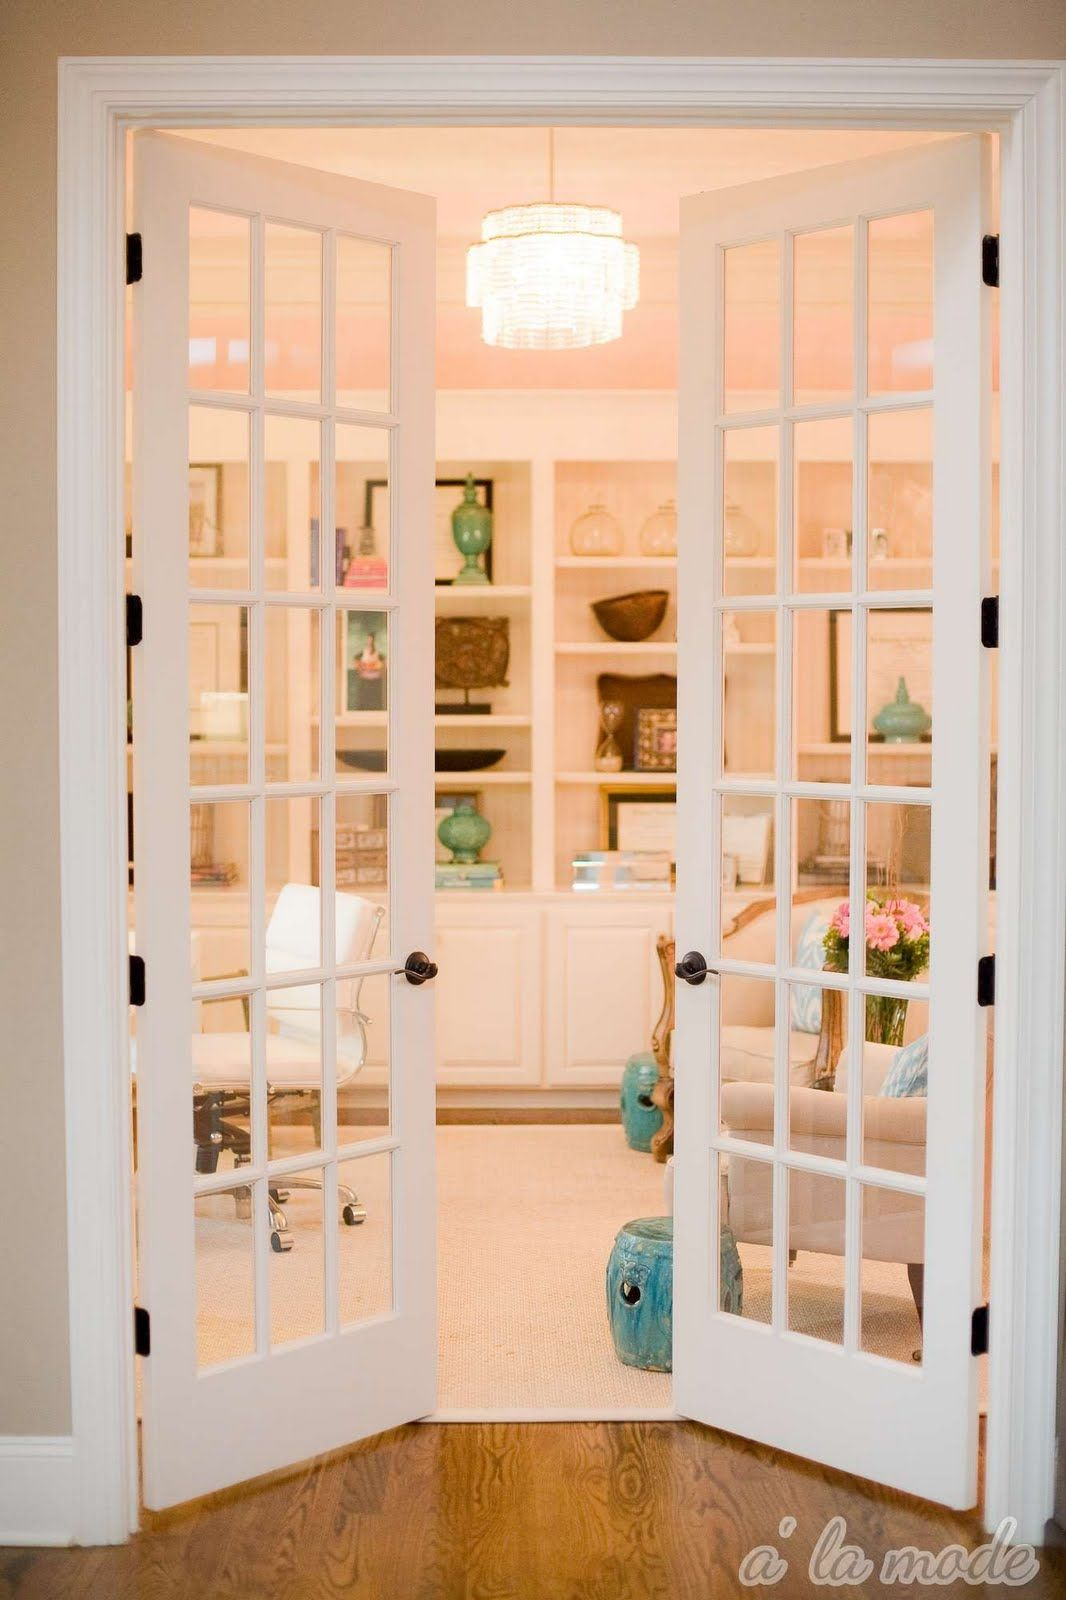 The Doors Shelves Lighting Touches Of Subtle Color Fresh Flowers